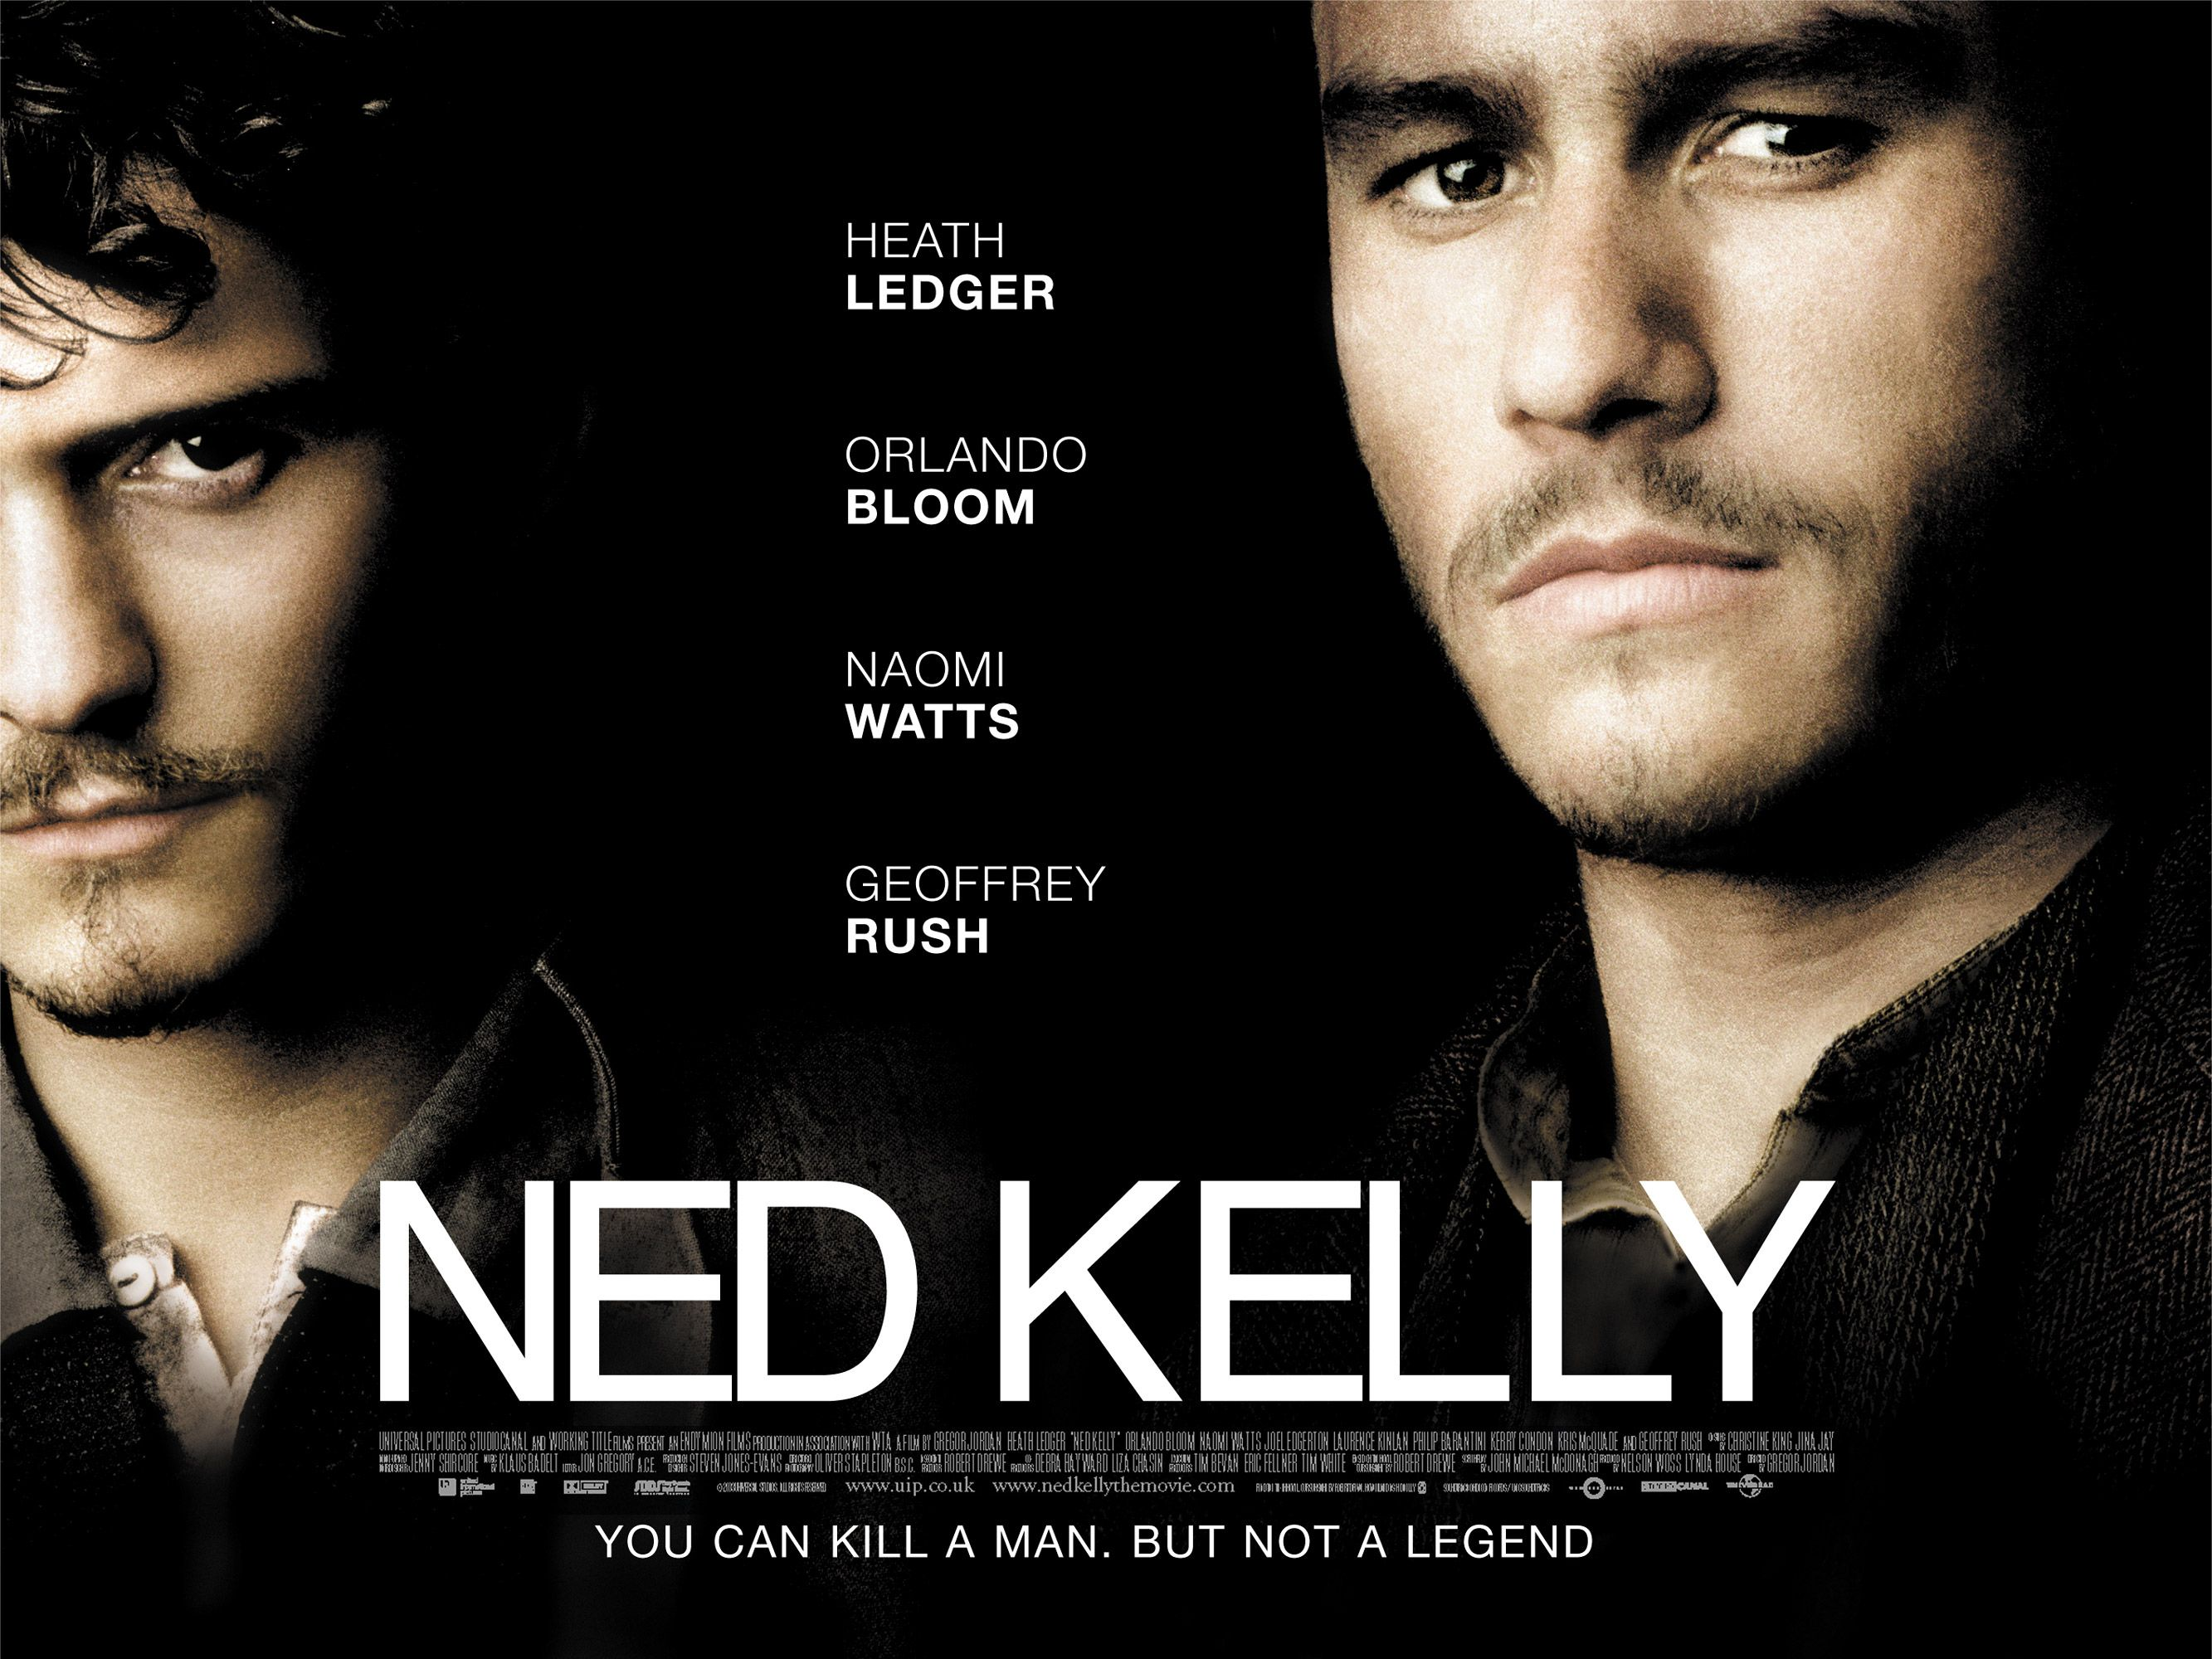 Movie Posters 2003: Ned Kelly (2003)